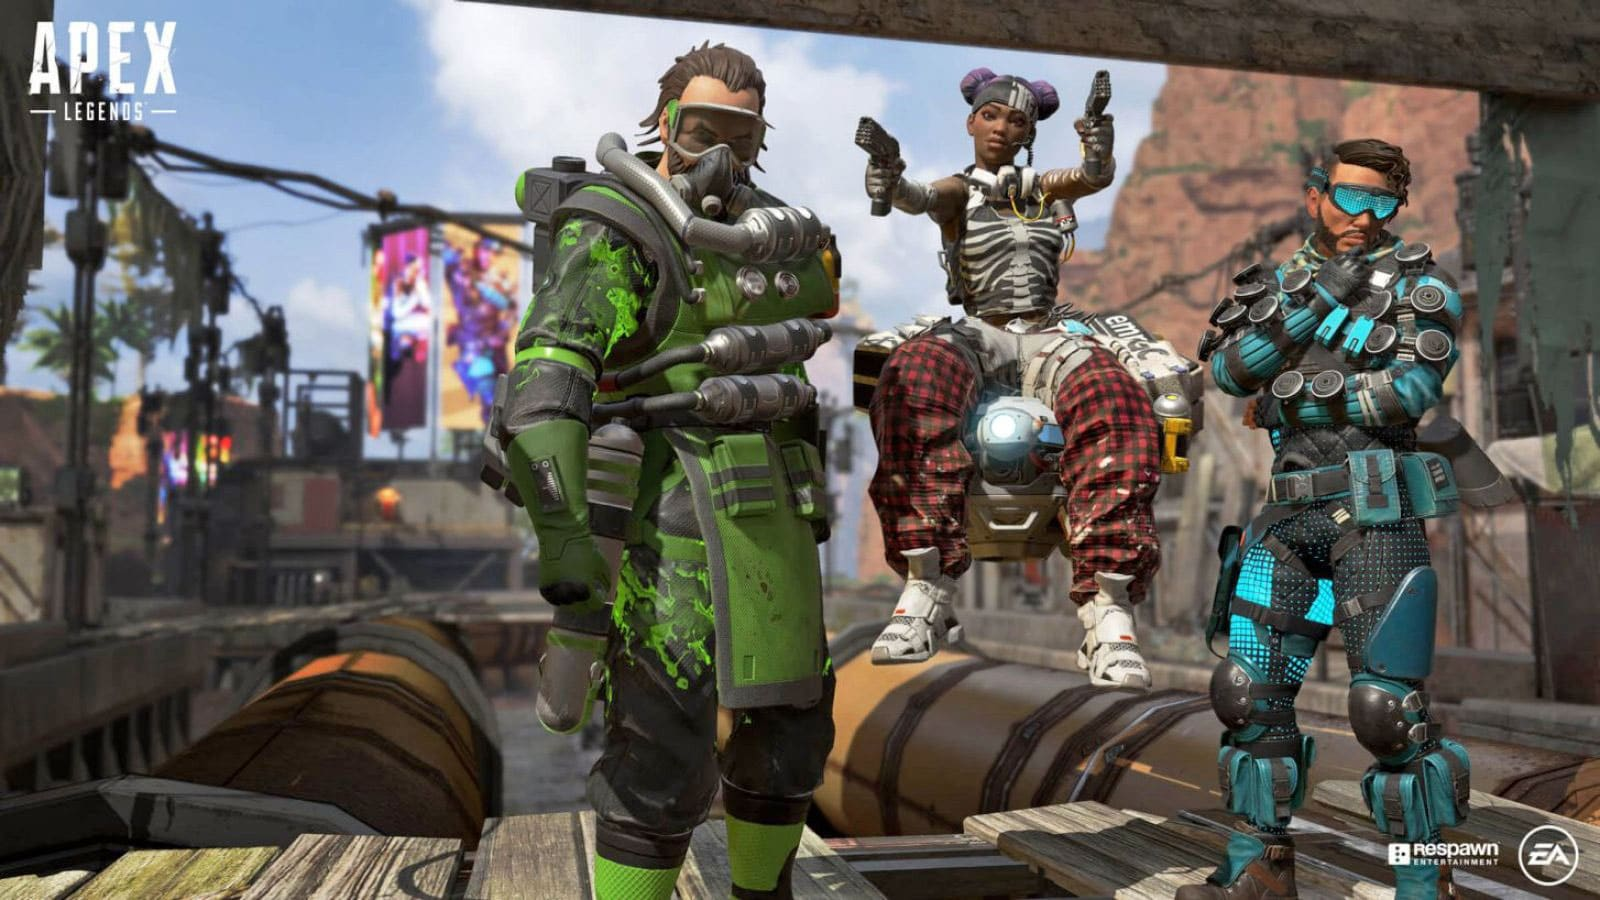 Apex legends cheats